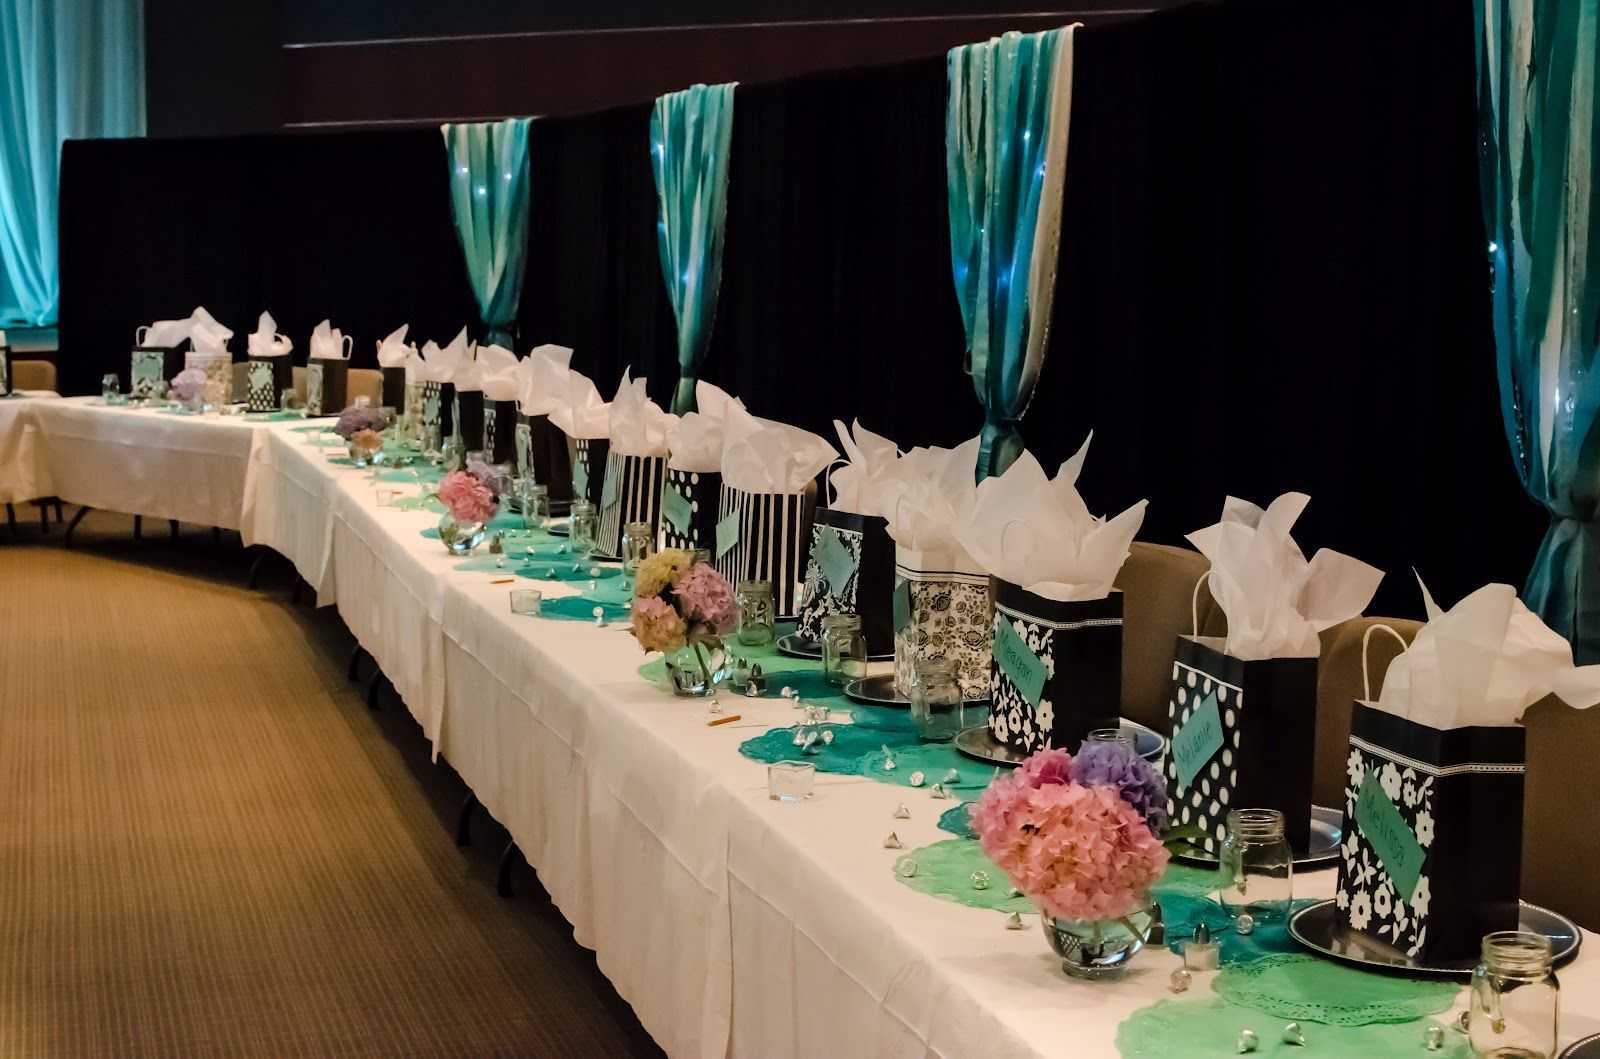 Best About Decorating For A Formal Banquet For Your Pastor This Month